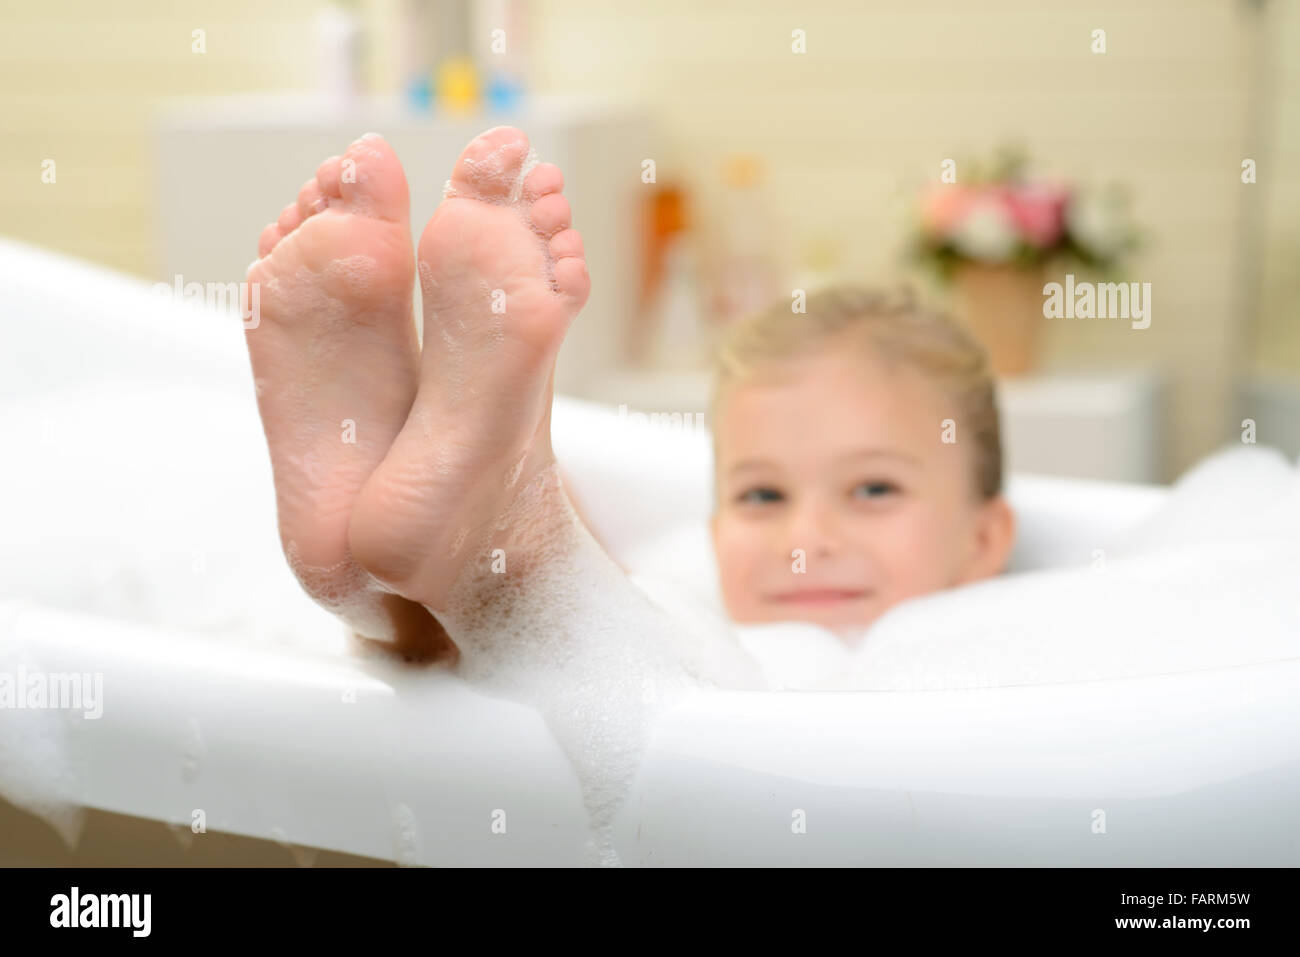 pleasant little girl playing in bath tube stock photo royalty free image 92719141 alamy. Black Bedroom Furniture Sets. Home Design Ideas